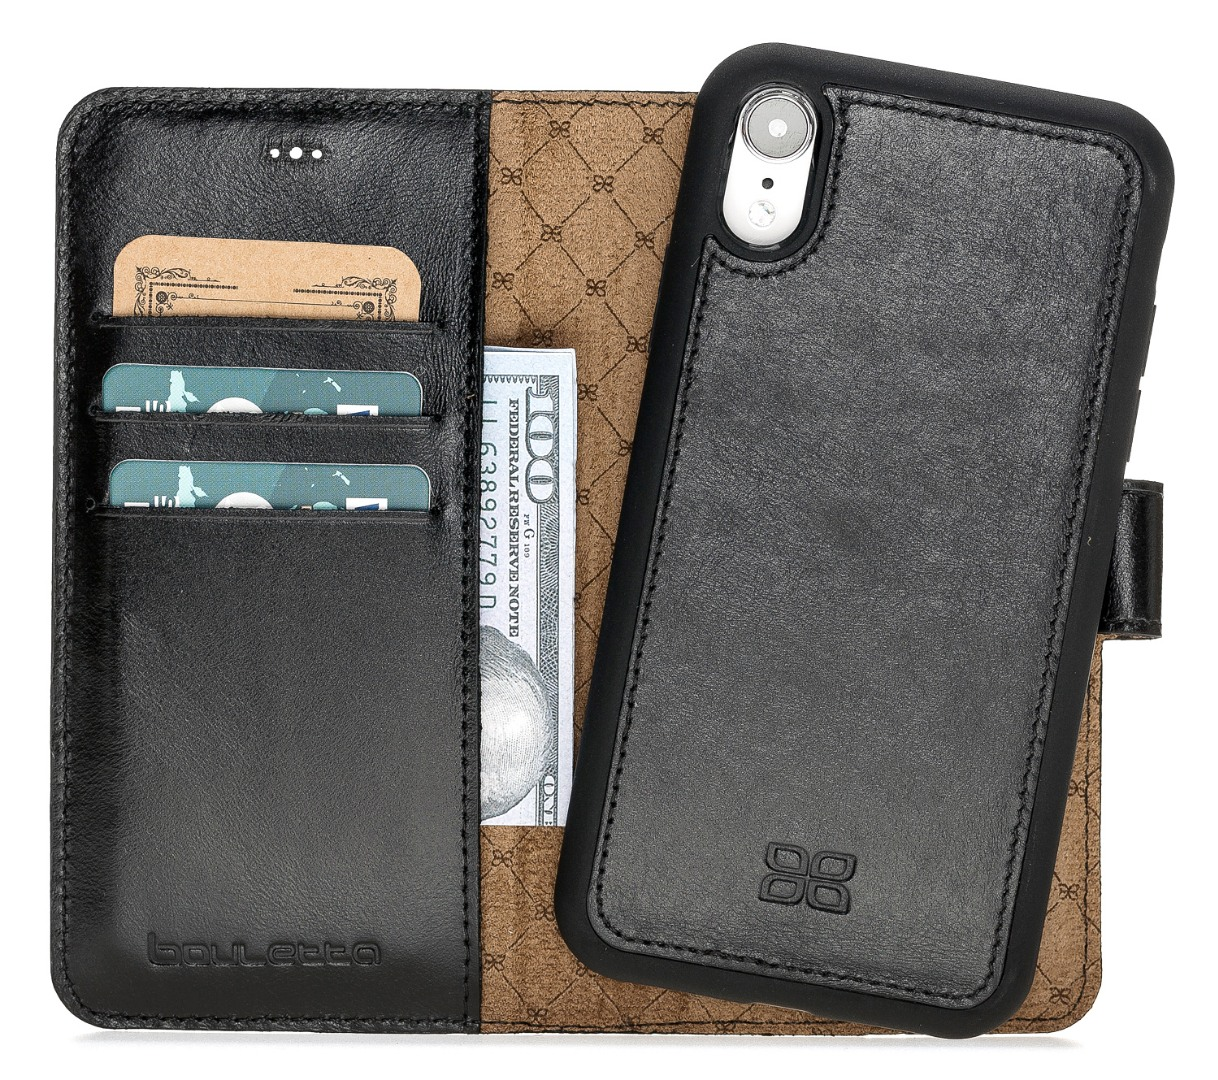 Husa piele naturala 2 in 1, tip portofel + back cover, iPhone XR - Bouletta Magic Wallet, Rustic black